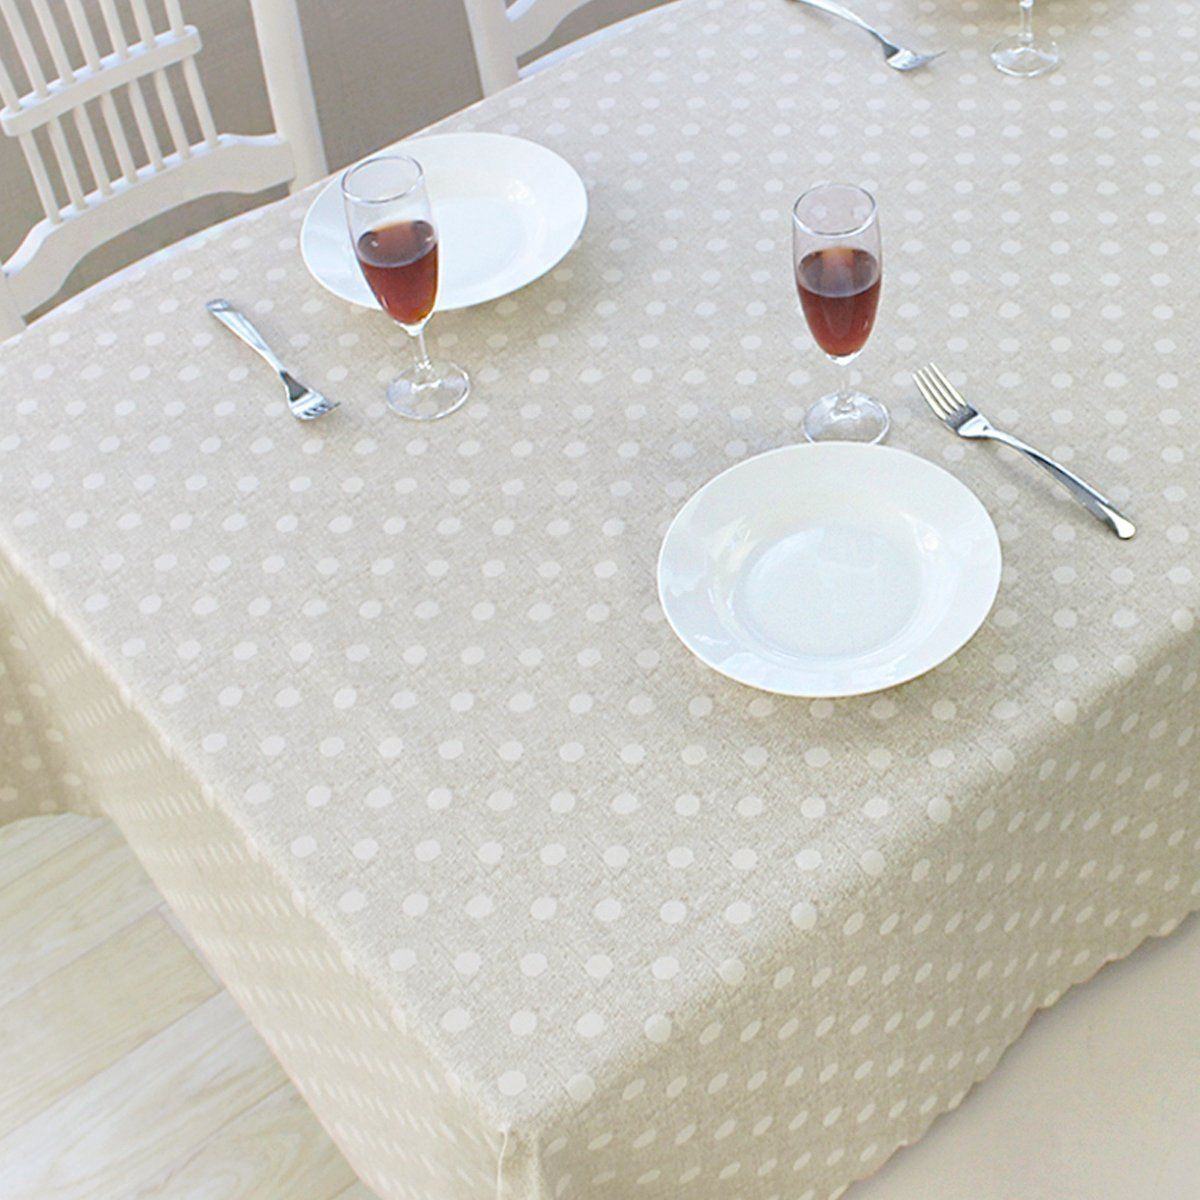 Duofire Vinyl Tablecloth Rectangle Wipe Clean Table Cover Waterproof Stain Resistant Oil Proof Spill Proof He Dinning Room Tables Dinning Room Vinyl Tablecloth